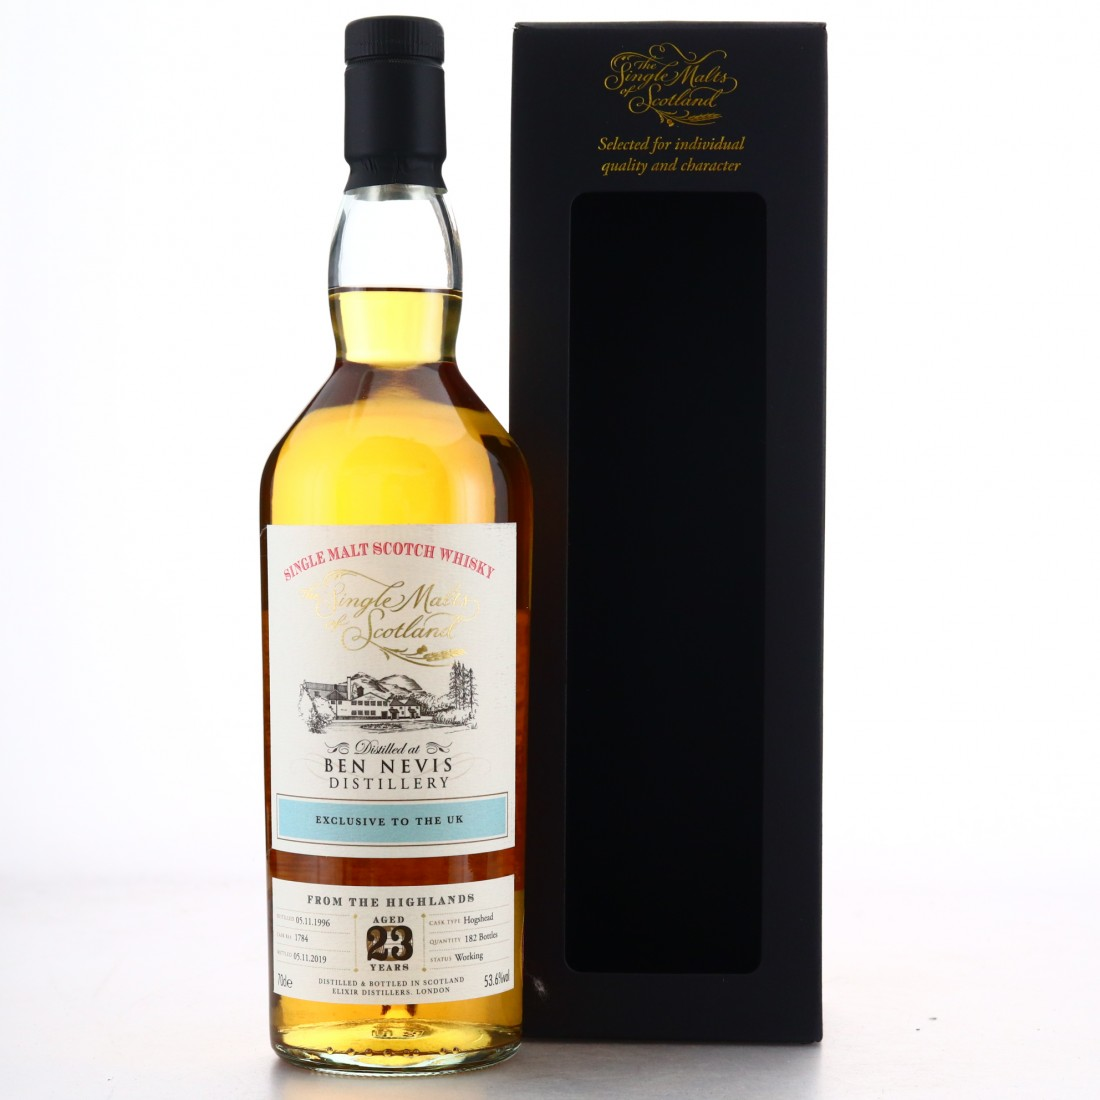 Ben Nevis 1996 Single Malts of Scotland 23 Year Old